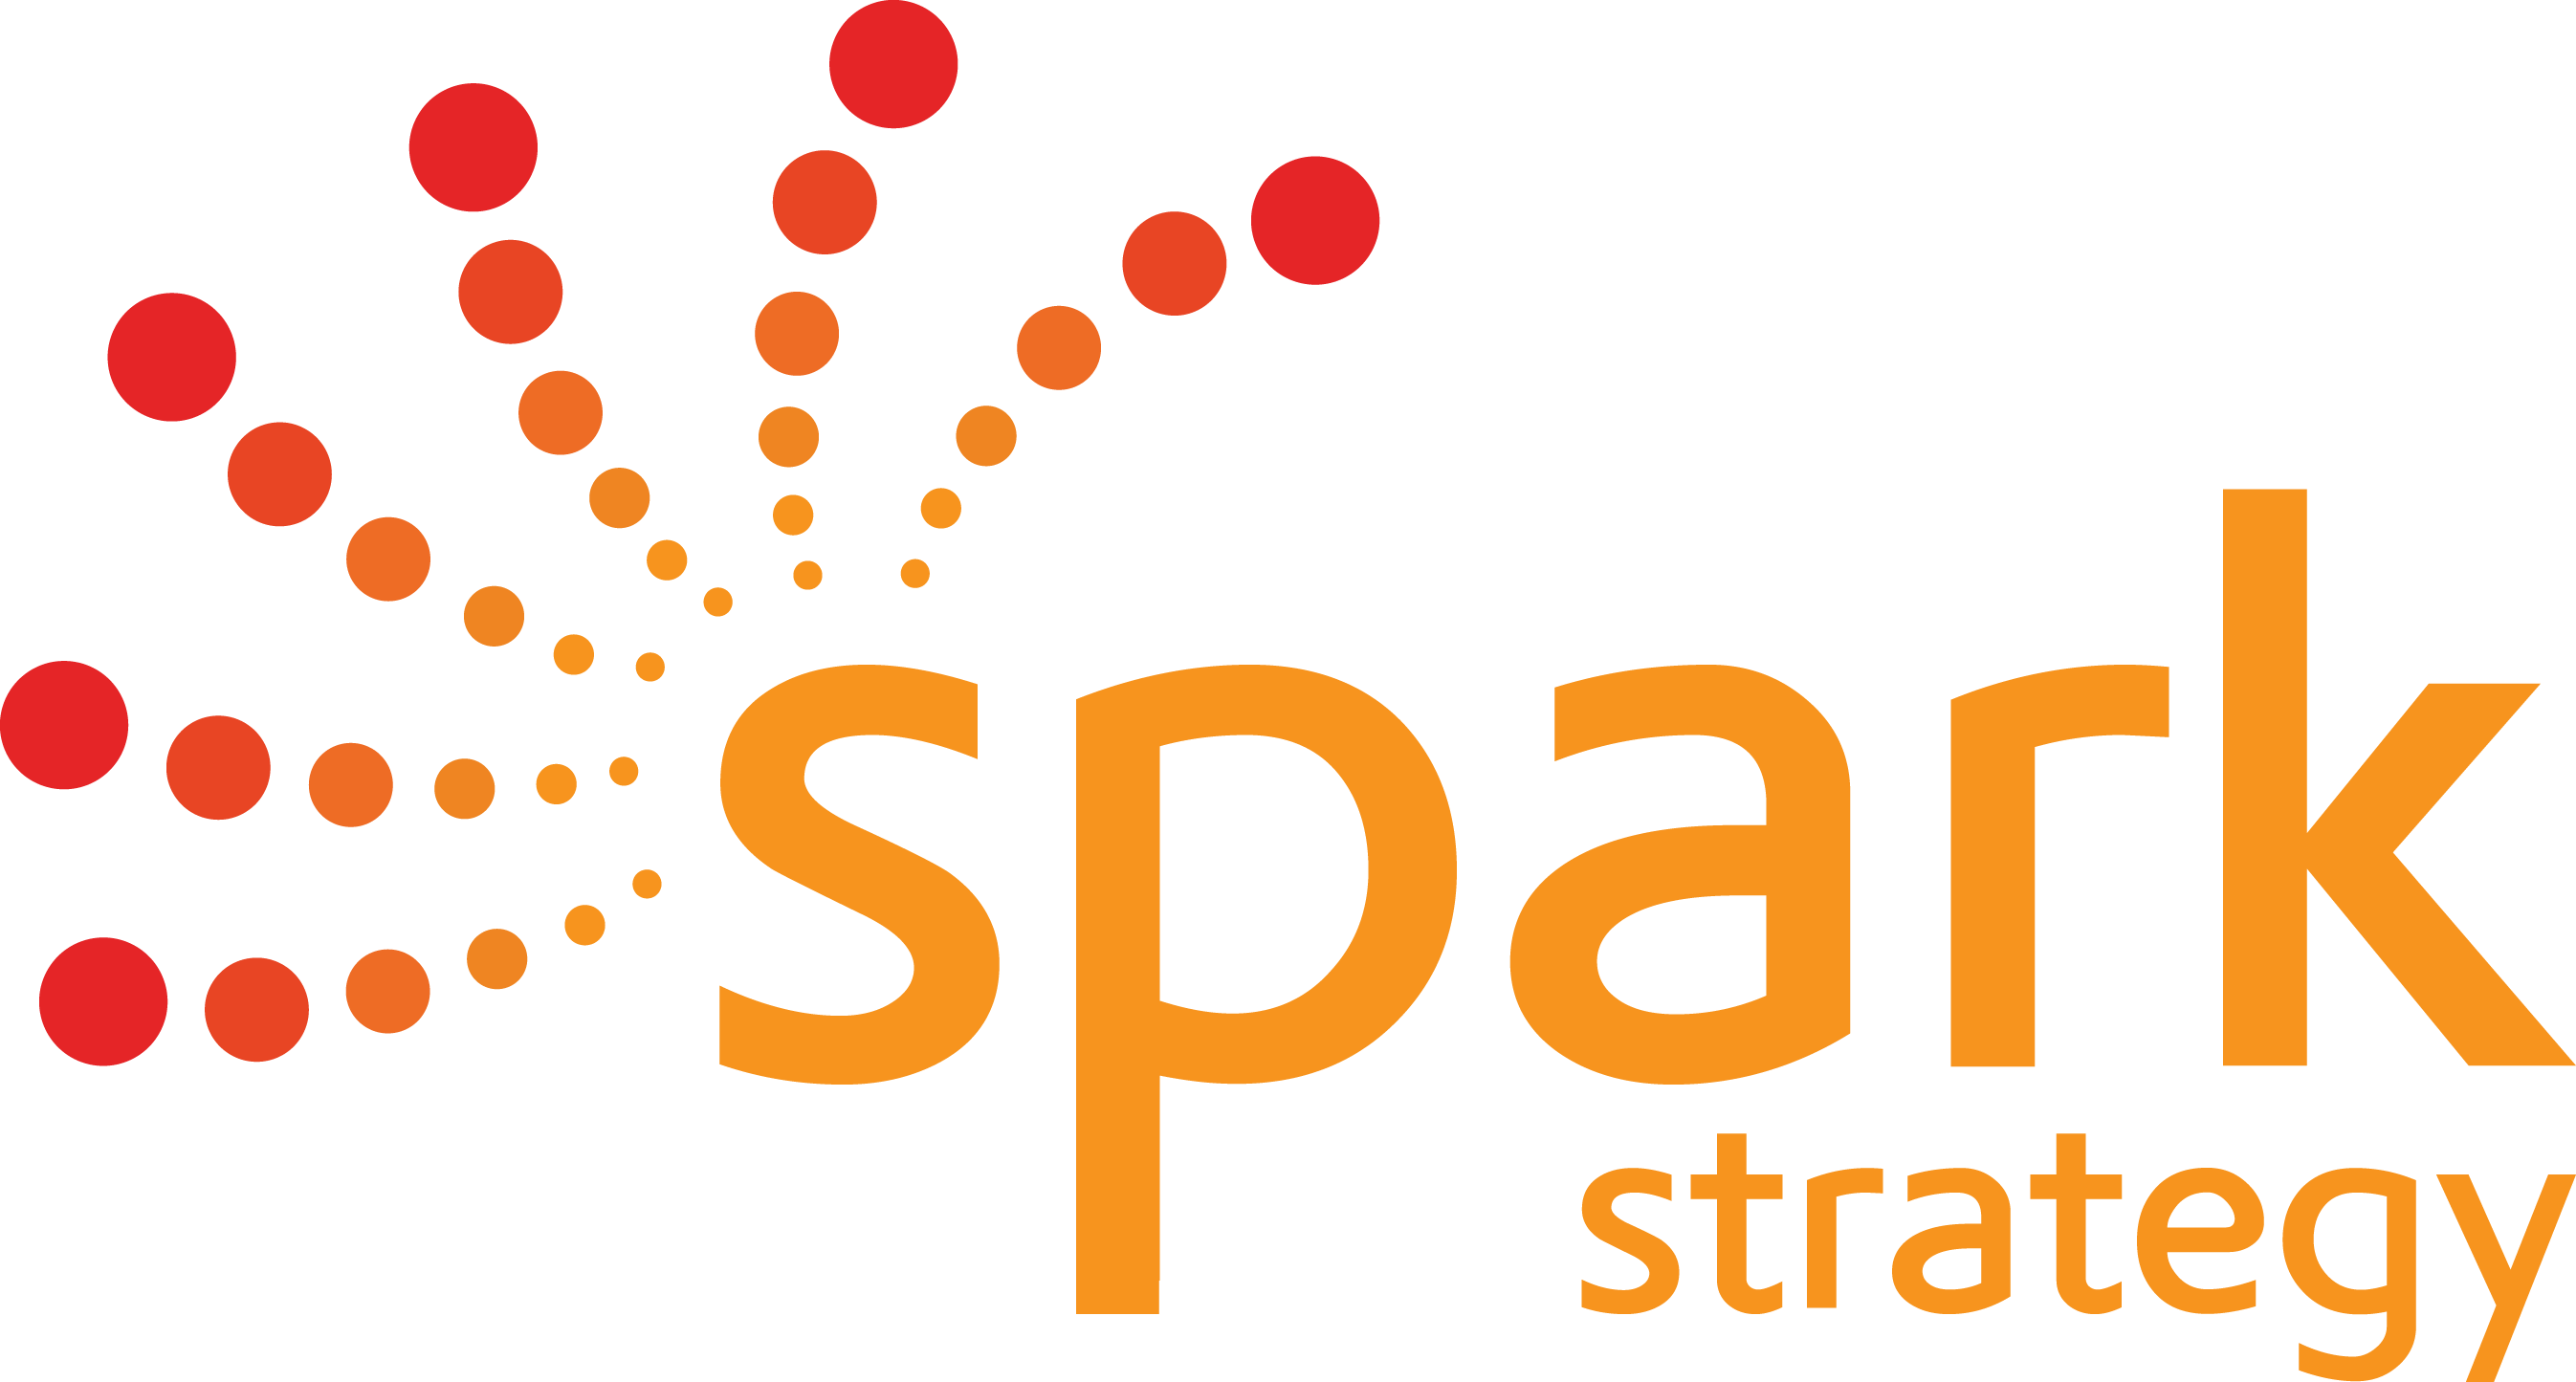 networking event designing a volunteering program spark strategy